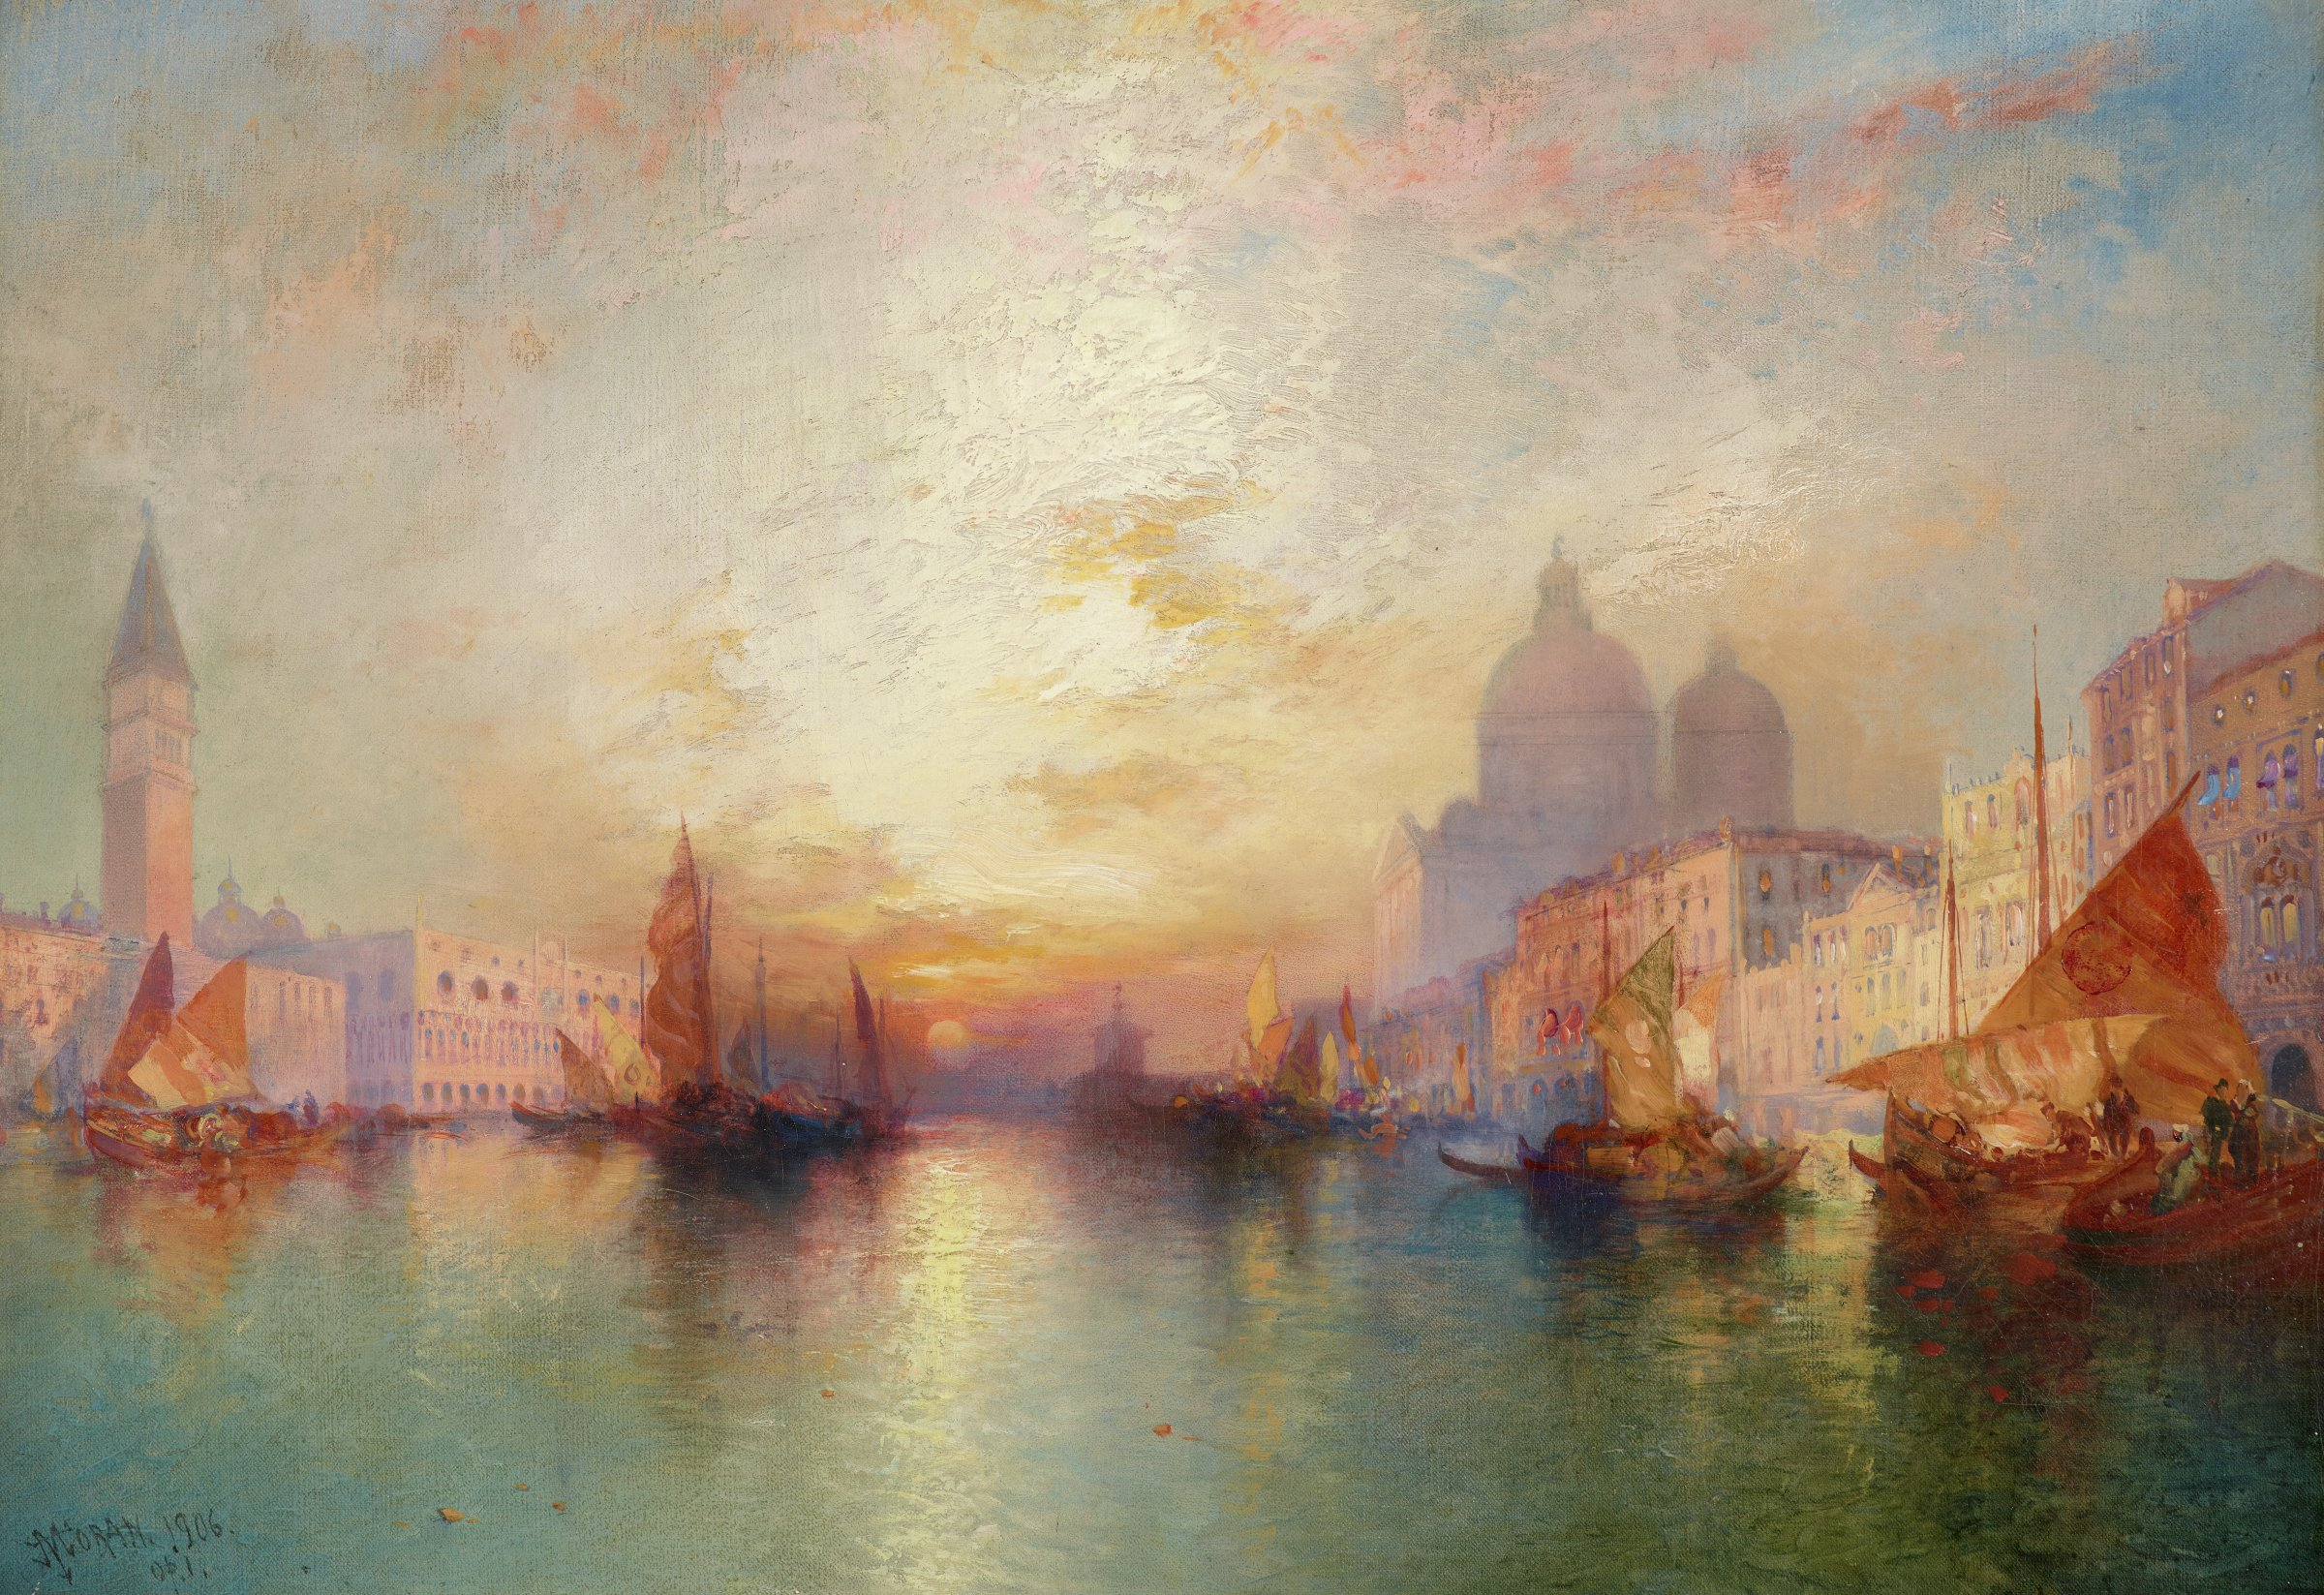 The Grand Canal, which primarily comprises the foreground, has varied blues and greens; a scattering of ships line the canal on both ends; the canal, which sharply recedes into space, culminates in a small but luminous sunset; saturated oranges radiate from around the setting sun and then suffuse into the sky, which has various shades of cool blues and pinks; there is also some impasto in the center of the composition in the sky, where Moran has built up a lot of white; the domes of Santa Maria della Salute can be seen on the right bank of the canal and, although inaccurate in terms of its actual location, the Campanile of St. Marks can be seen on the left bank.